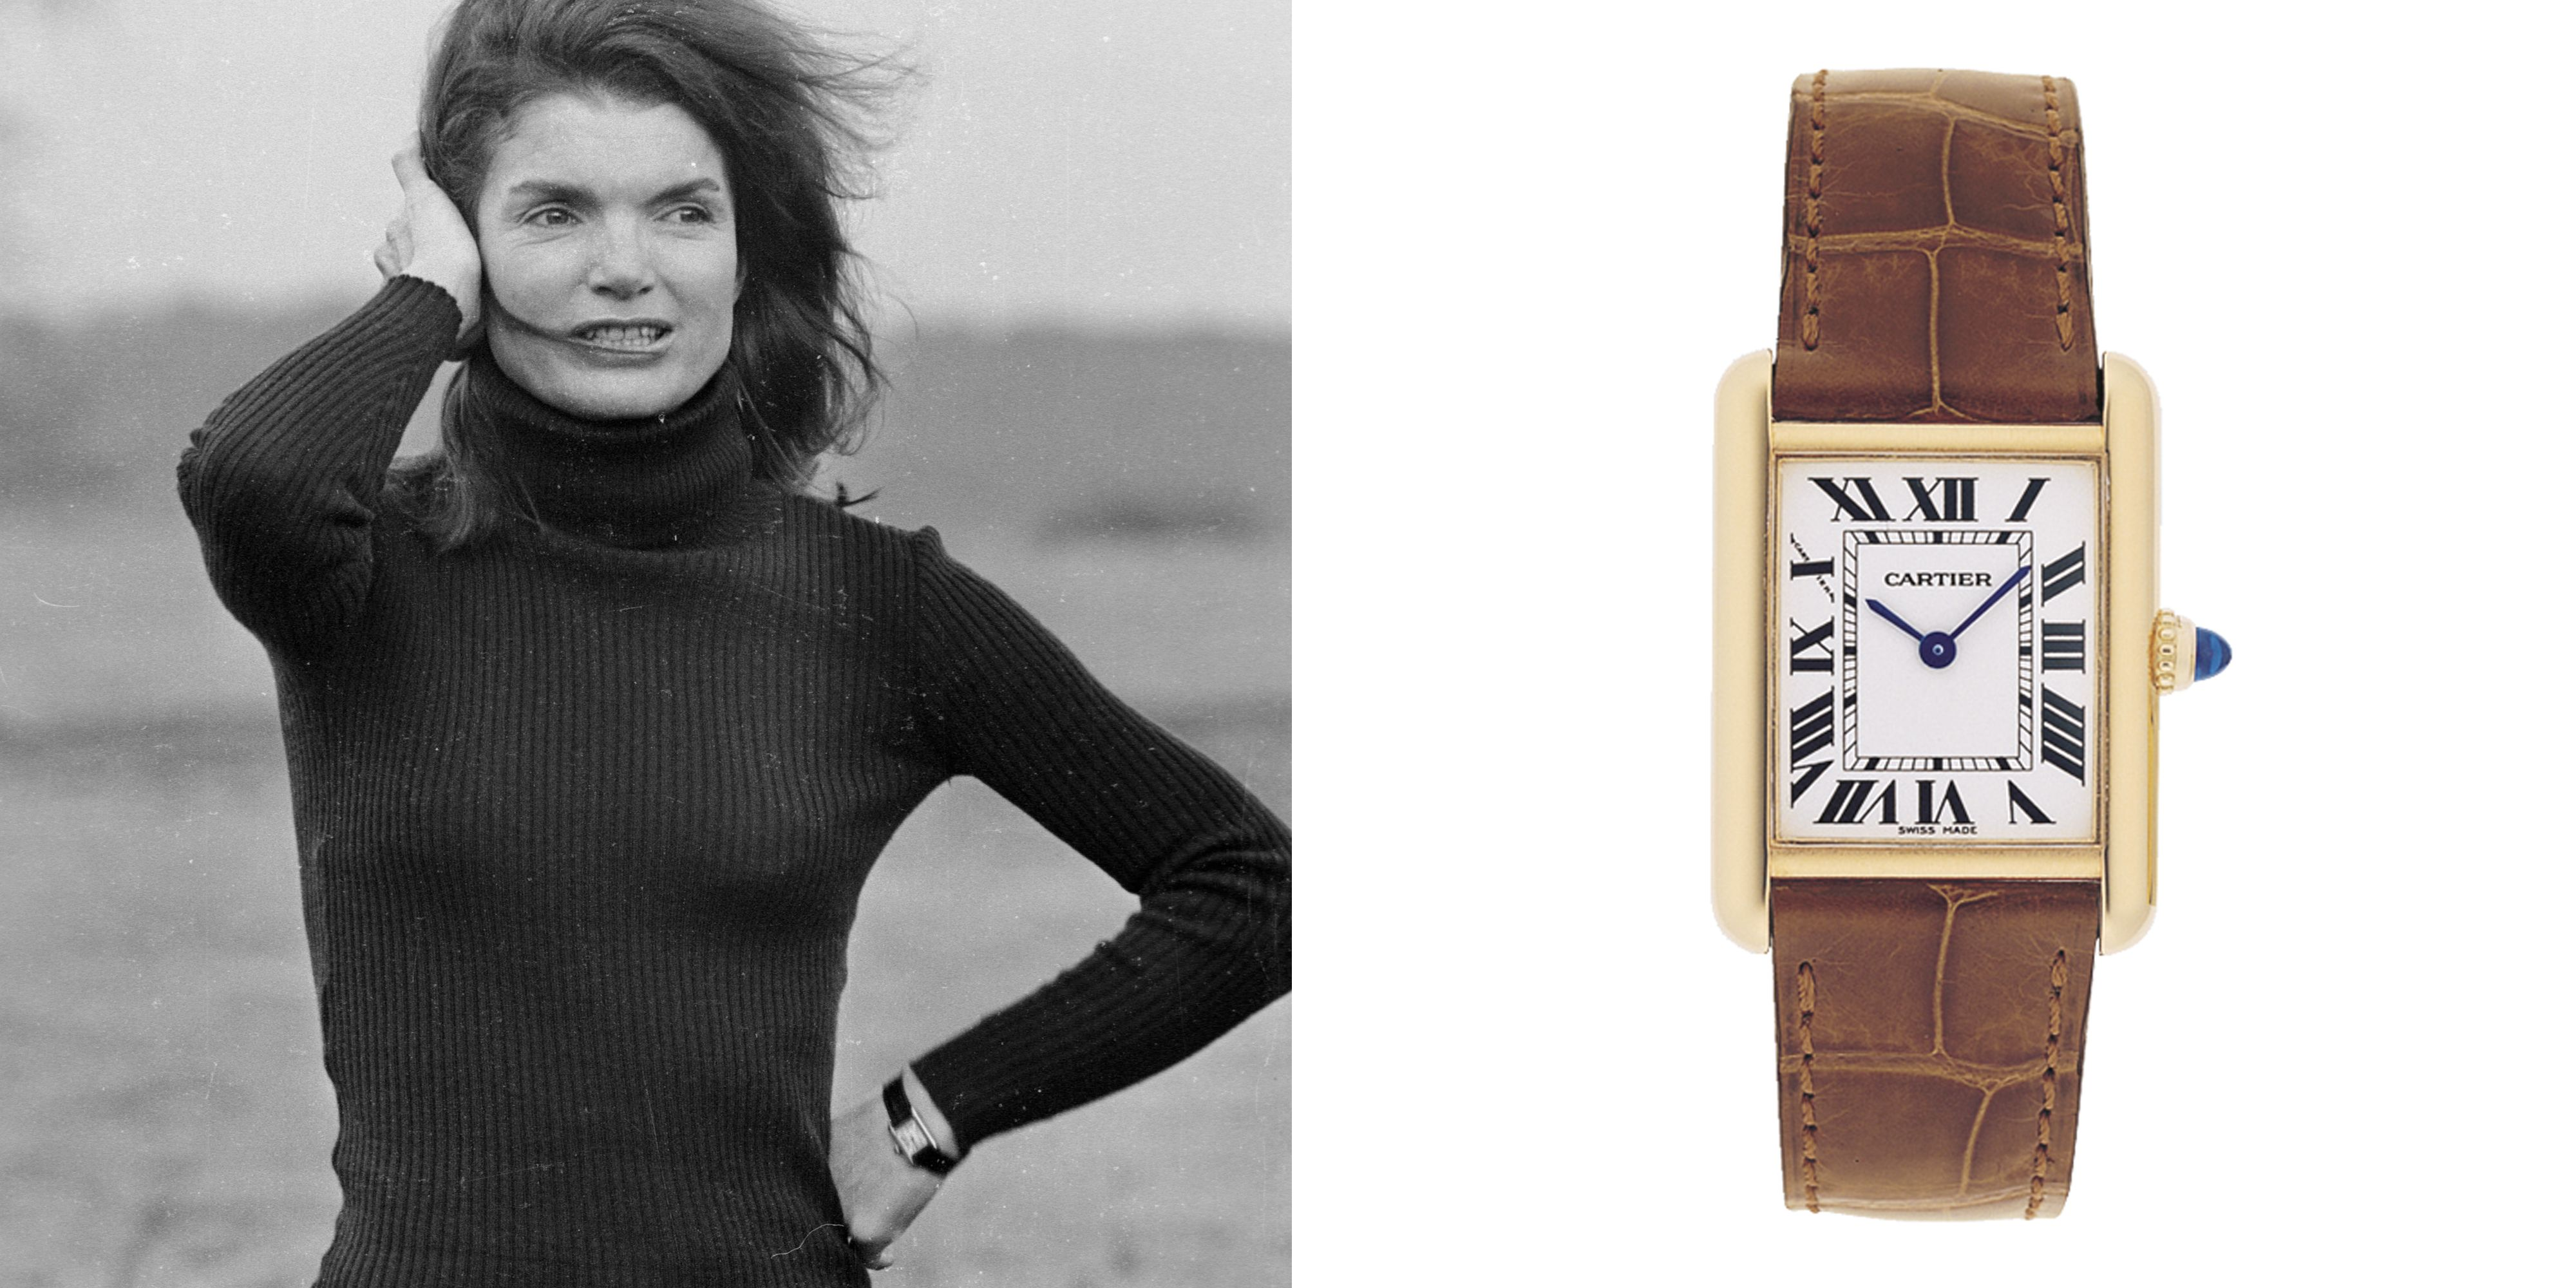 What celebrities 39 watches say about them pinterest cartier tank jackie kennedy and cartier for Woman celebrity watches